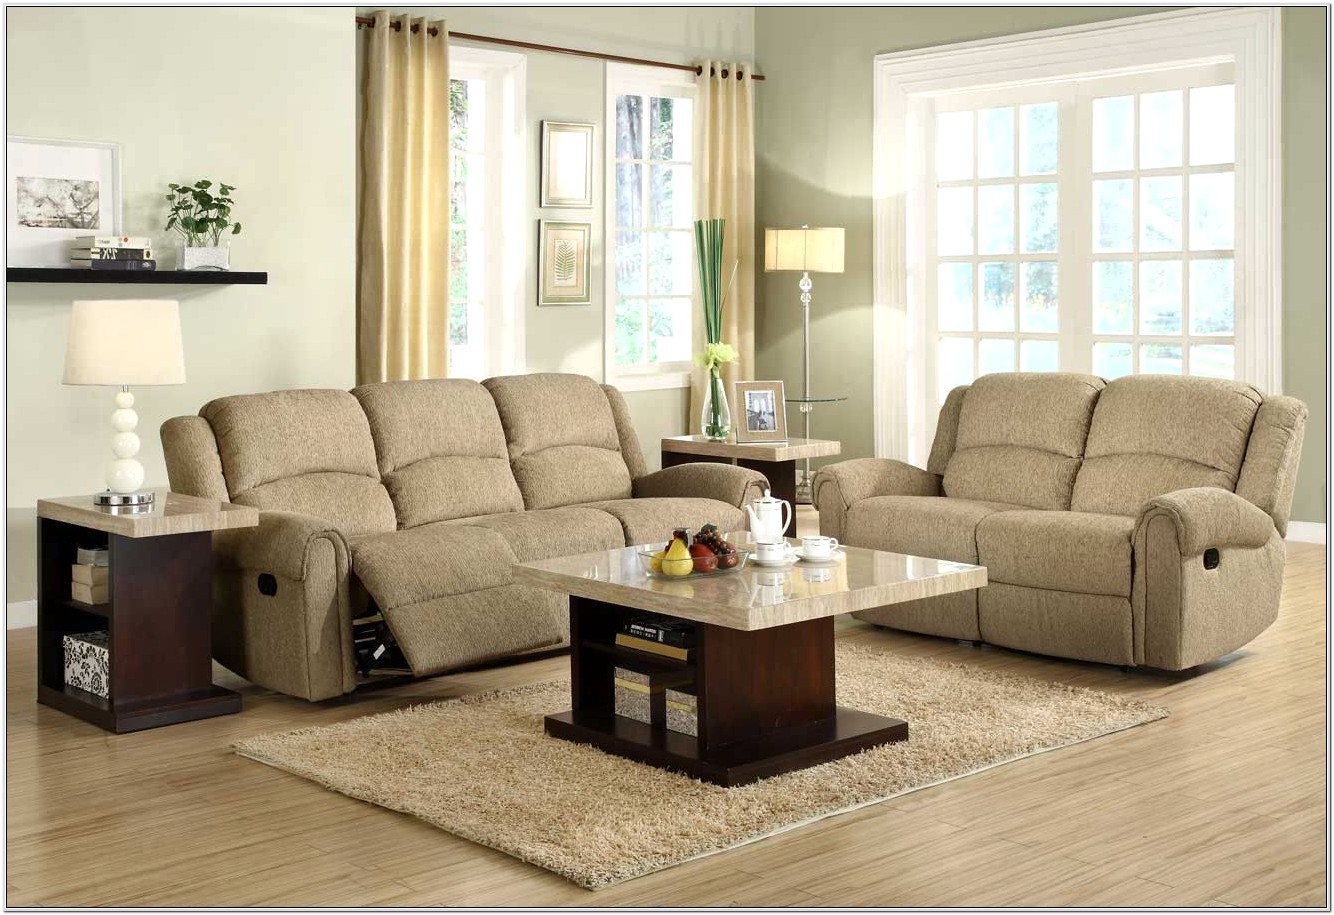 Affordable Living Room Sets Houston